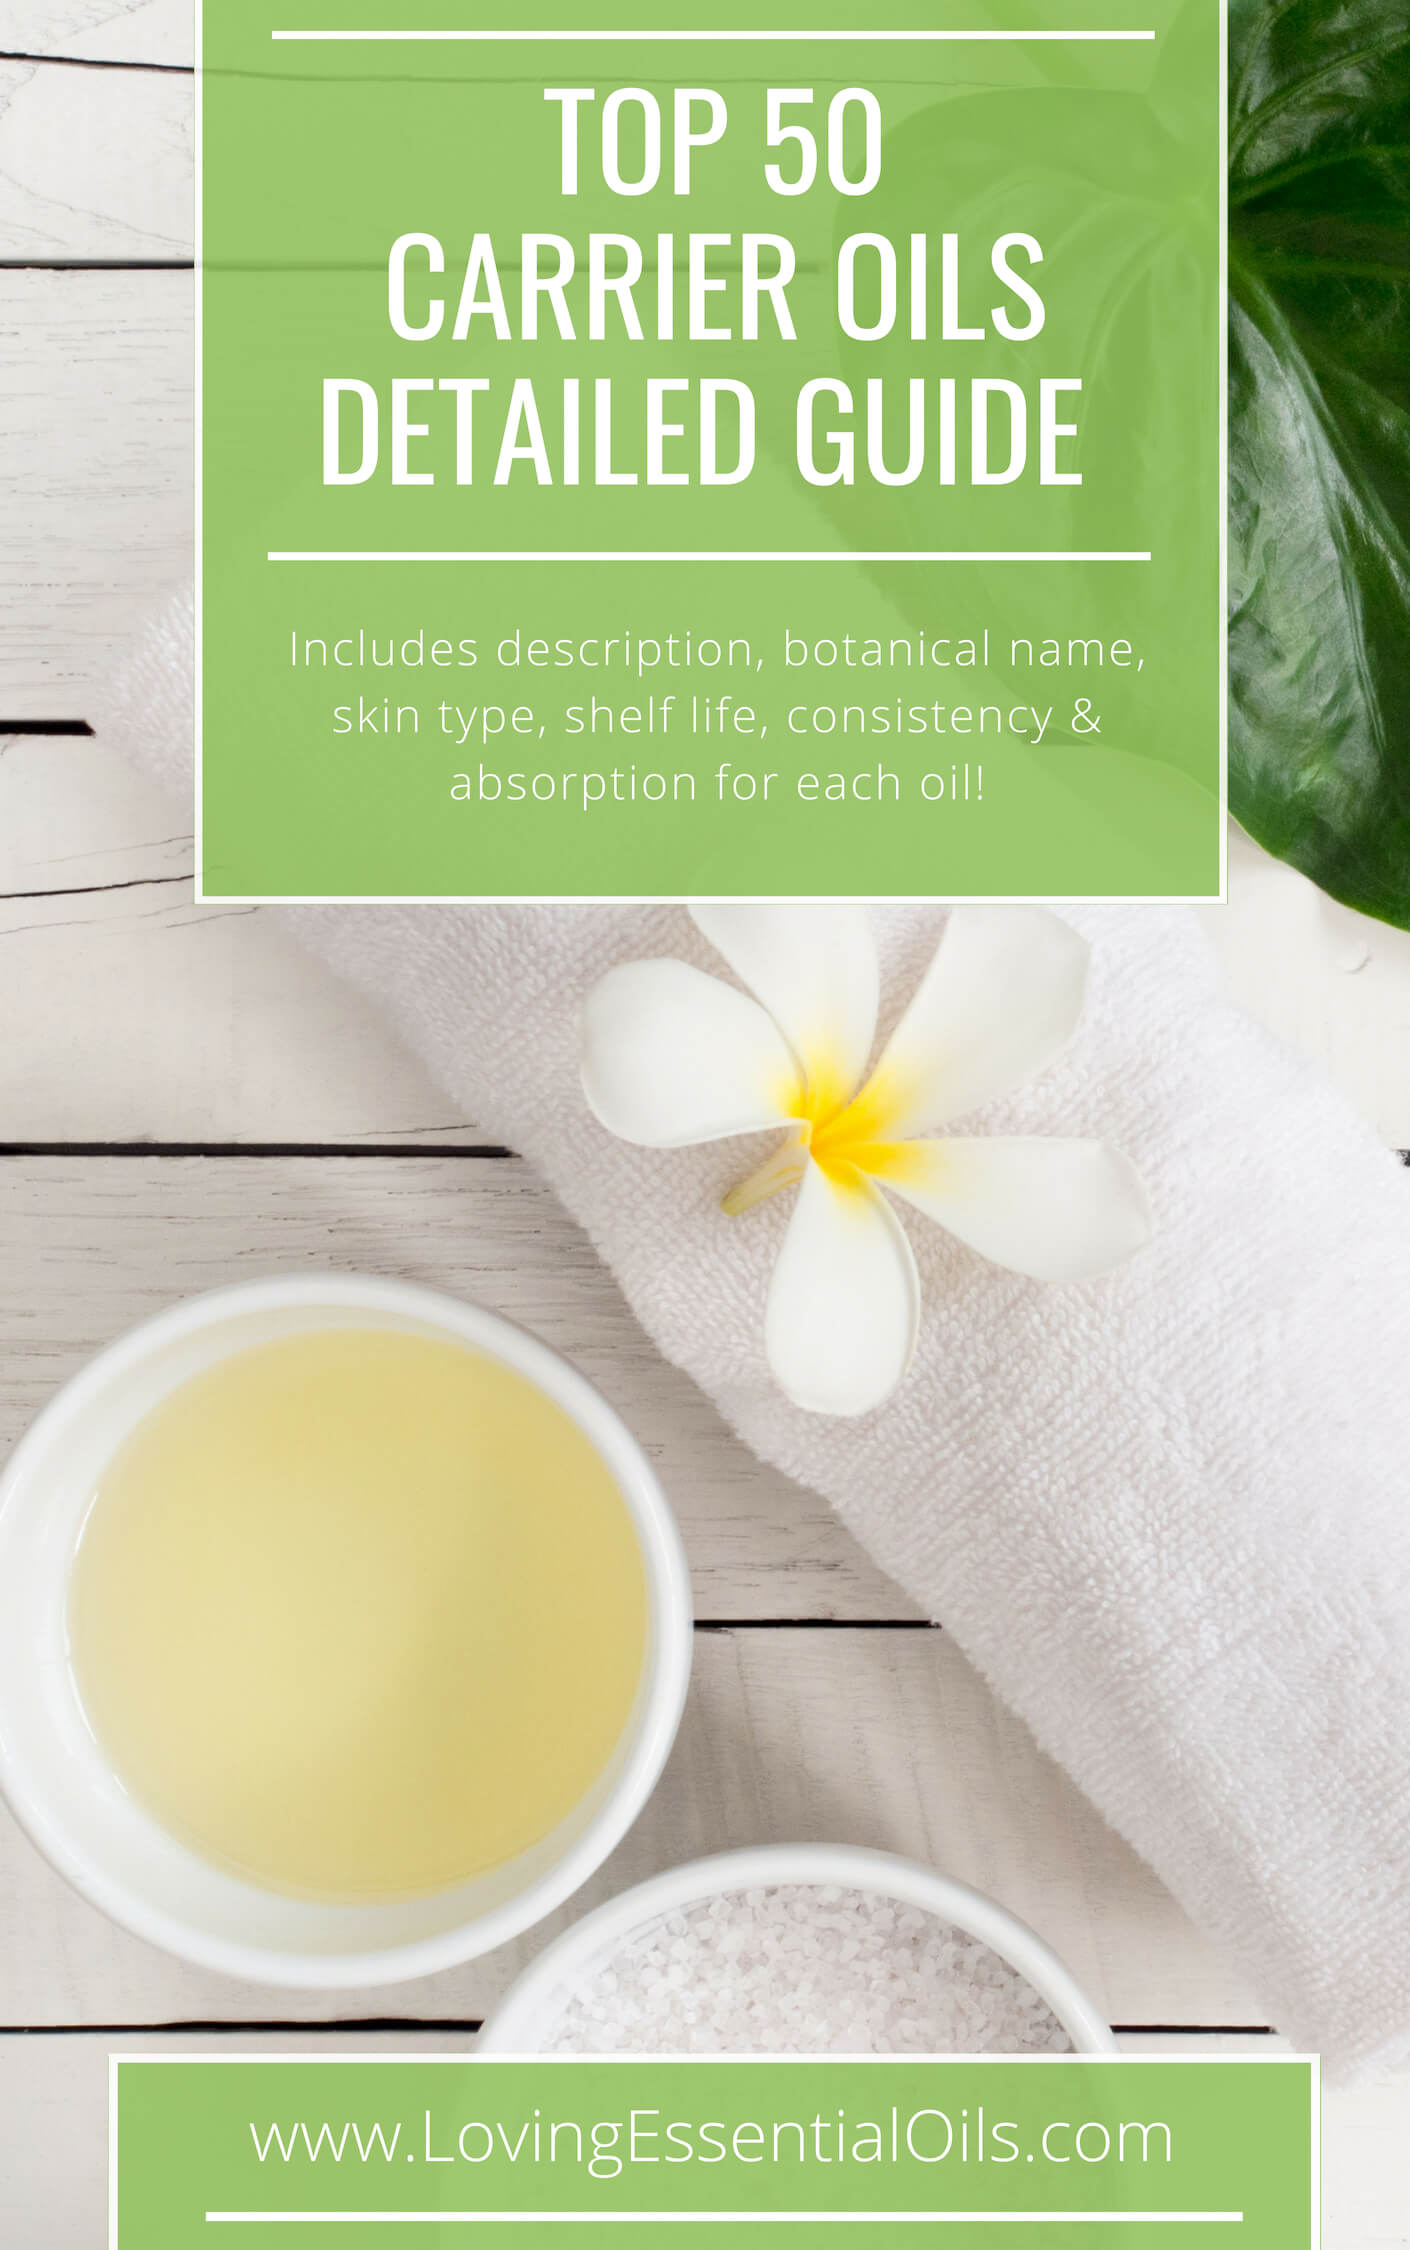 Carrier Oils for Essential oils - Free Detailed Guide by Loving Essential Oils